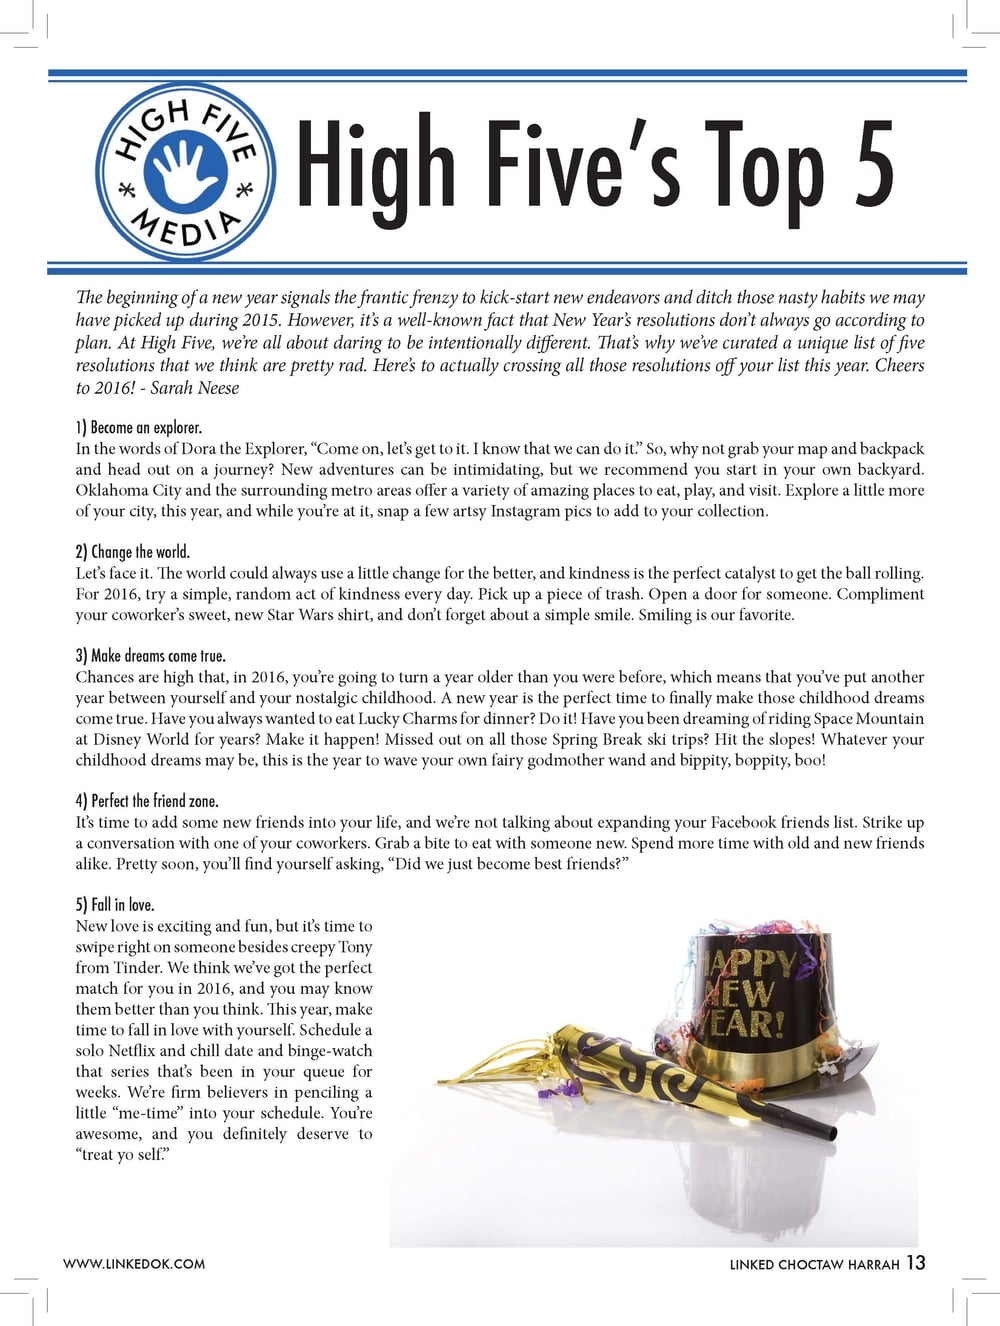 "High Five's Top 5  The beginning of a new year signals the frantic frenzy to kick-start new endeavors and ditch those nasty habits we may have picked up during 2015. However, it's a well-known fact that New Year's resolutions don't always go according to plan. At High Five, we're all about daring to be intentionally different. That's why we've curated a unique list of five resolutions that we think are pretty rad. Here's to actually crossing all those resolutions off your list this year. Cheers to 2016! - Sarah Neese  1)    Become an explorer. In the words of Dora the Explorer, ""Come on, let's get to it. I know that we can do it."" So, why not grab your map and backpack and head out on a journey? New adventures can be intimidating, but we recommend you start in your own backyard. Oklahoma City and the surrounding metro areas offer a variety of amazing places to eat, play, and visit. Explore a little more of your city, this year, and while you're at it, snap a few artsy Instagram pics to add to your collection. 2)    Change the world. Let's face it. The world could always use a little change for the better, and kindness is the perfect catalyst to get the ball rolling. For 2016, try a simple, random act of kindness every day. Pick up a piece of trash. Open a door for someone. Compliment your coworker's sweet, new Star Wars shirt, and don't forget about a simple smile. Smiling is our favorite. 3)    Make dreams come true. Chances are high that, in 2016, you're going to turn a year older than you were before, which means that you've put another year between yourself and your nostalgic childhood. A new year is the perfect time to finally make those childhood dreams come true. Have you always wanted to eat Lucky Charms for dinner? Do it! Have you been dreaming of riding Space Mountain at Disney World for years? Make it happen! Missed out on all those Spring Break ski trips? Hit the slopes! Whatever your childhood dreams may be, this is the year to wave your own fairy godmother wand and bippity, boppity, boo! 4)    Perfect the friend zone. It's time to add some new friends into your life, and we're not talking about expanding your Facebook friends list. Strike up a conversation with one of your coworkers. Grab a bite to eat with someone new. Spend more time with old and new friends alike. Pretty soon, you'll find yourself asking, ""Did we just become best friends?"" 5)    Fall in love. New love is exciting and fun, but it's time to swipe right on someone besides creepy Tony  from Tinder. We think we've got the perfect match for you in 2016, and you may know them better than you think. This year, make time to fall in love with yourself. Schedule a solo Netflix and chill date and binge-watch that series that's been in your queue for weeks. We're firm believers in penciling a little ""me-time"" into your schedule. You're awesome, and you definitely deserve to ""treat yo self."""